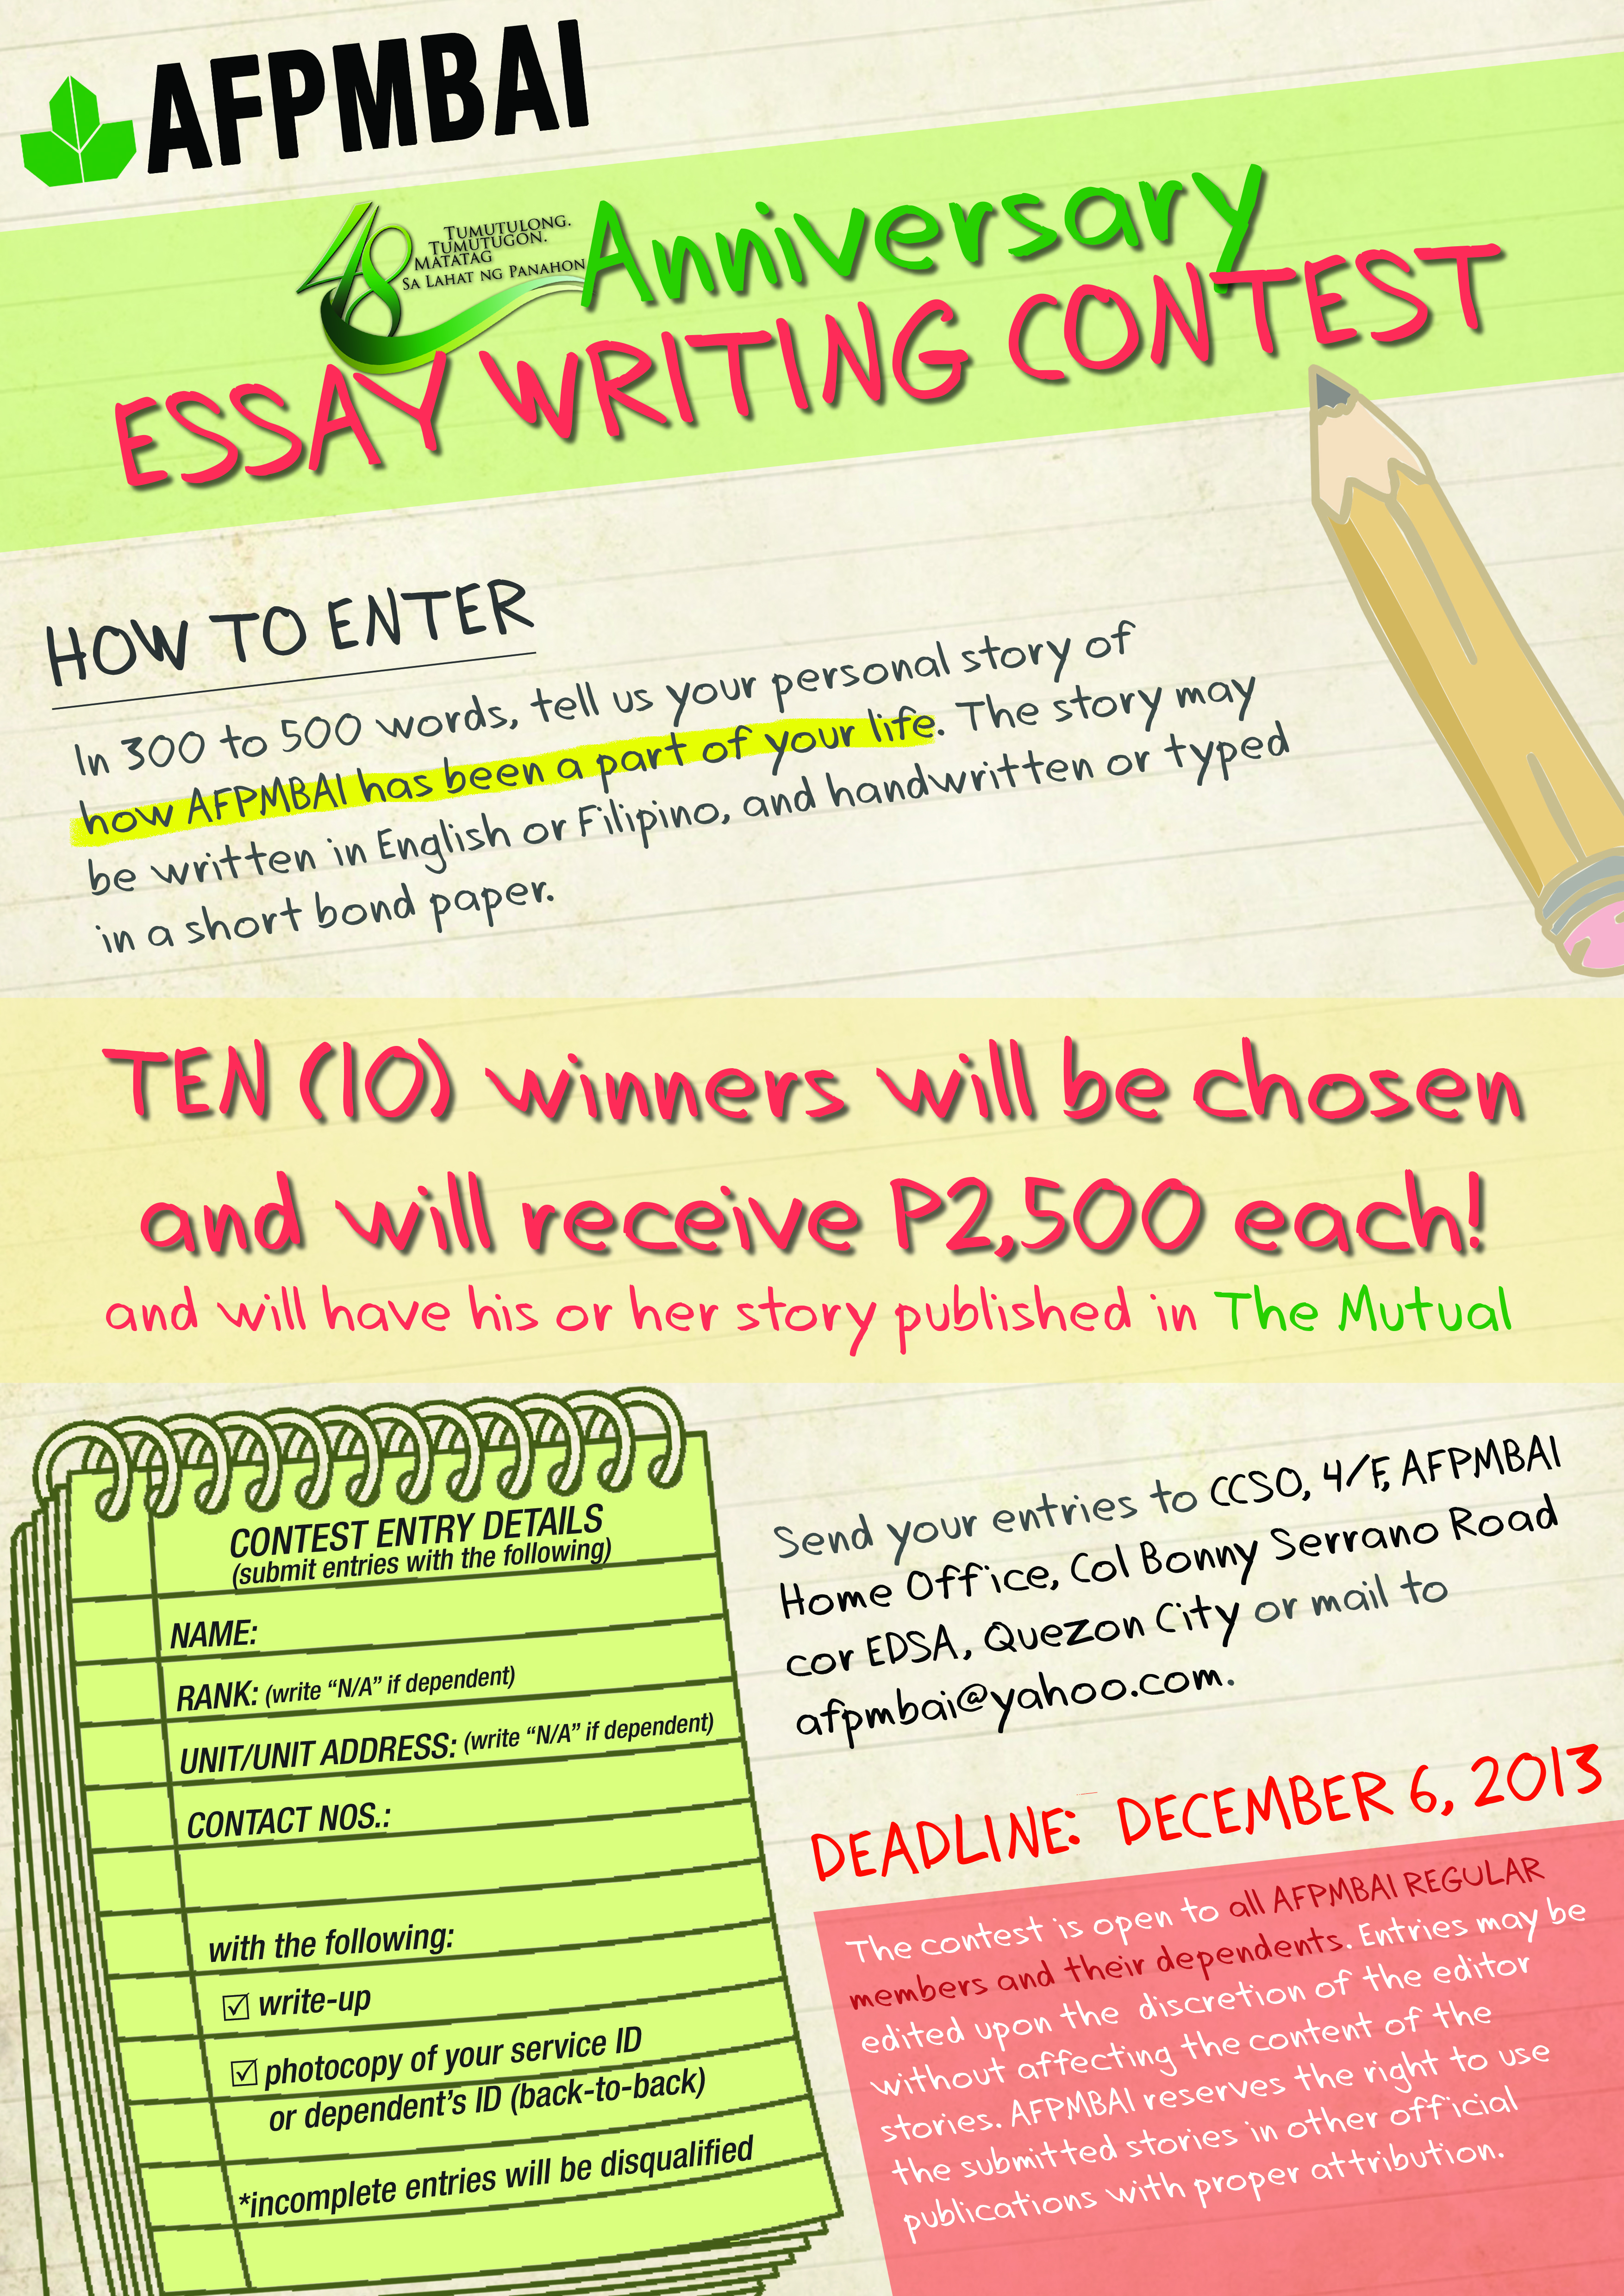 003 Essay Example Writing Contest Competition Essays About For Nutrition Month P Objectives Rubrics Philippines Mechanics Criteria Tips Incredible International Competitions High School Students Rules By Essayhub Full